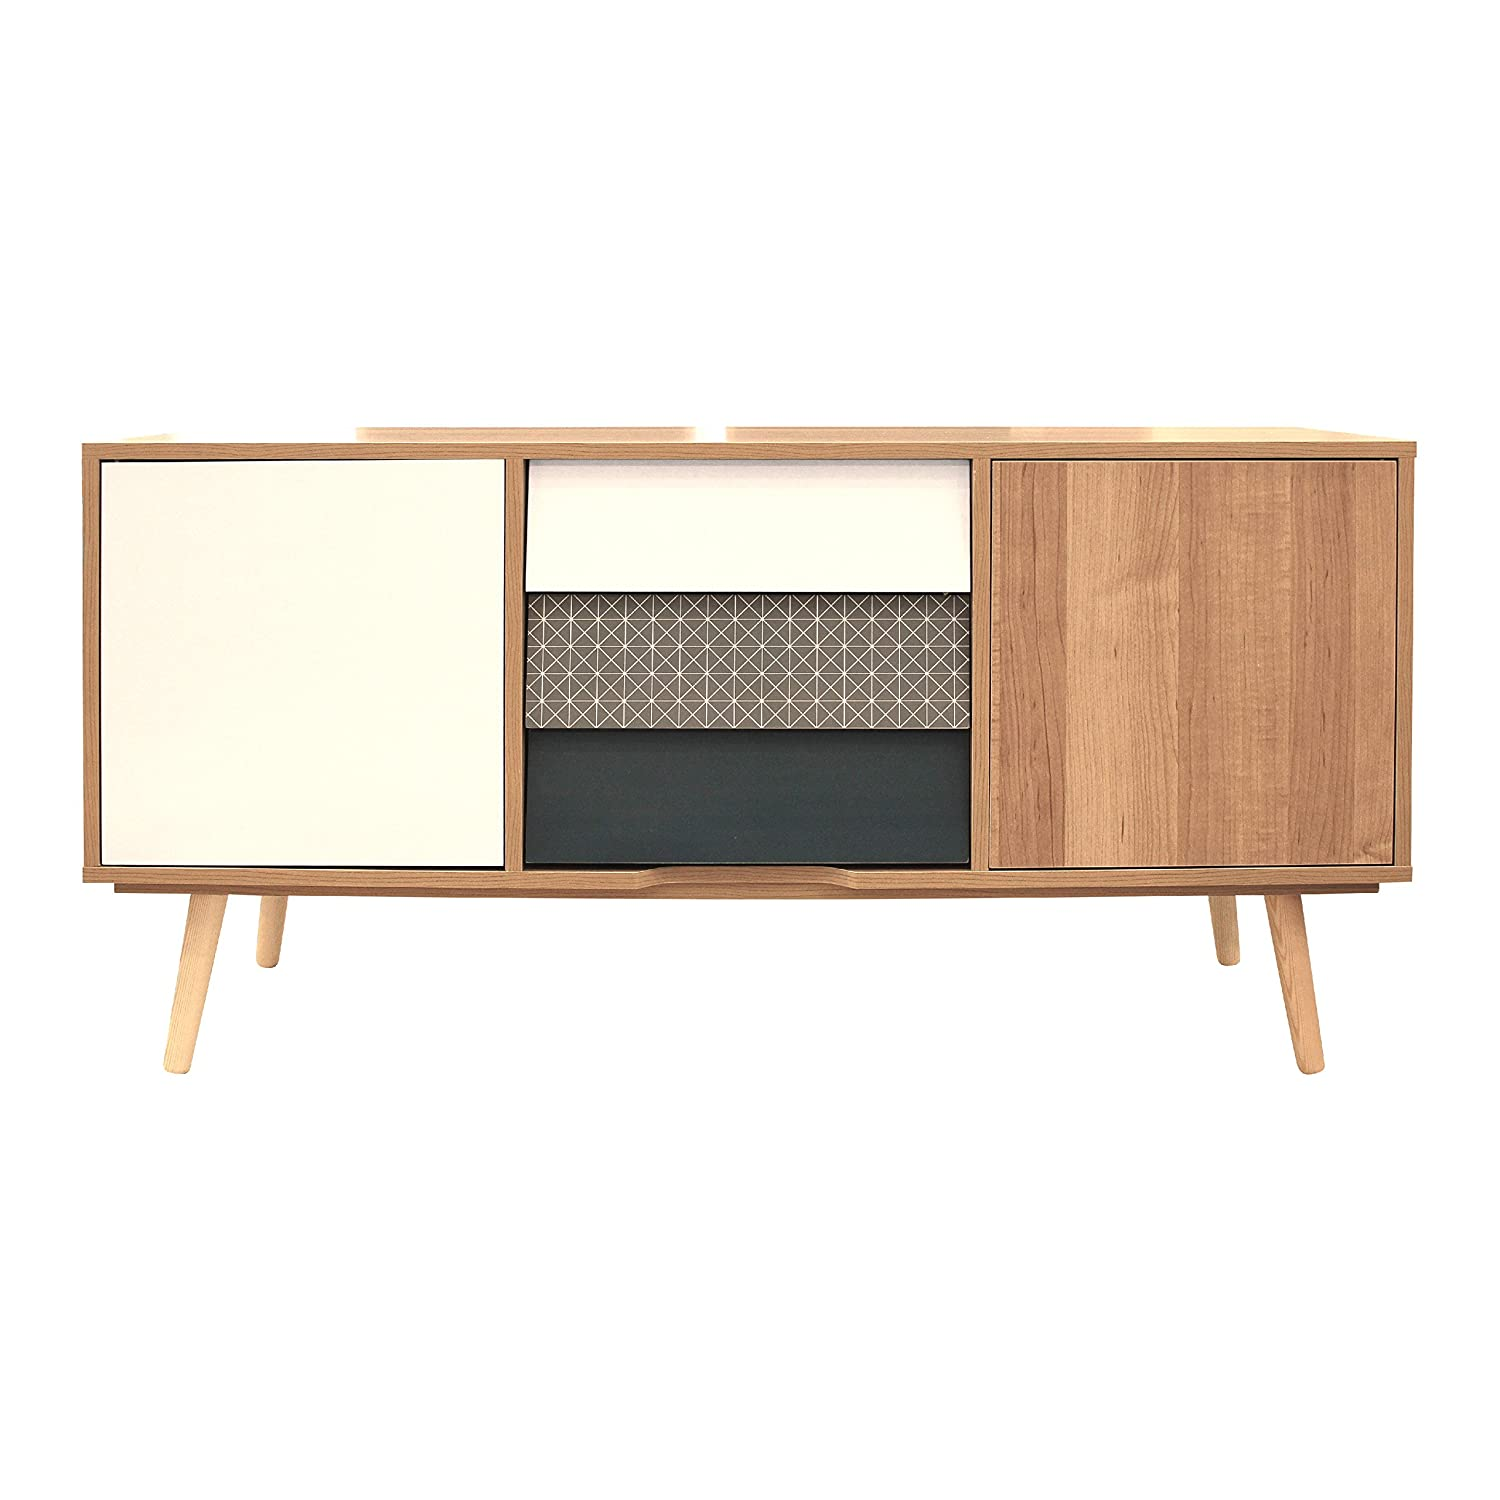 The Home Deco Factory Hd3723 Meuble Tv 2 Portes Et 3 Tiroirs  # Meuble Tv Scandinave Bleu